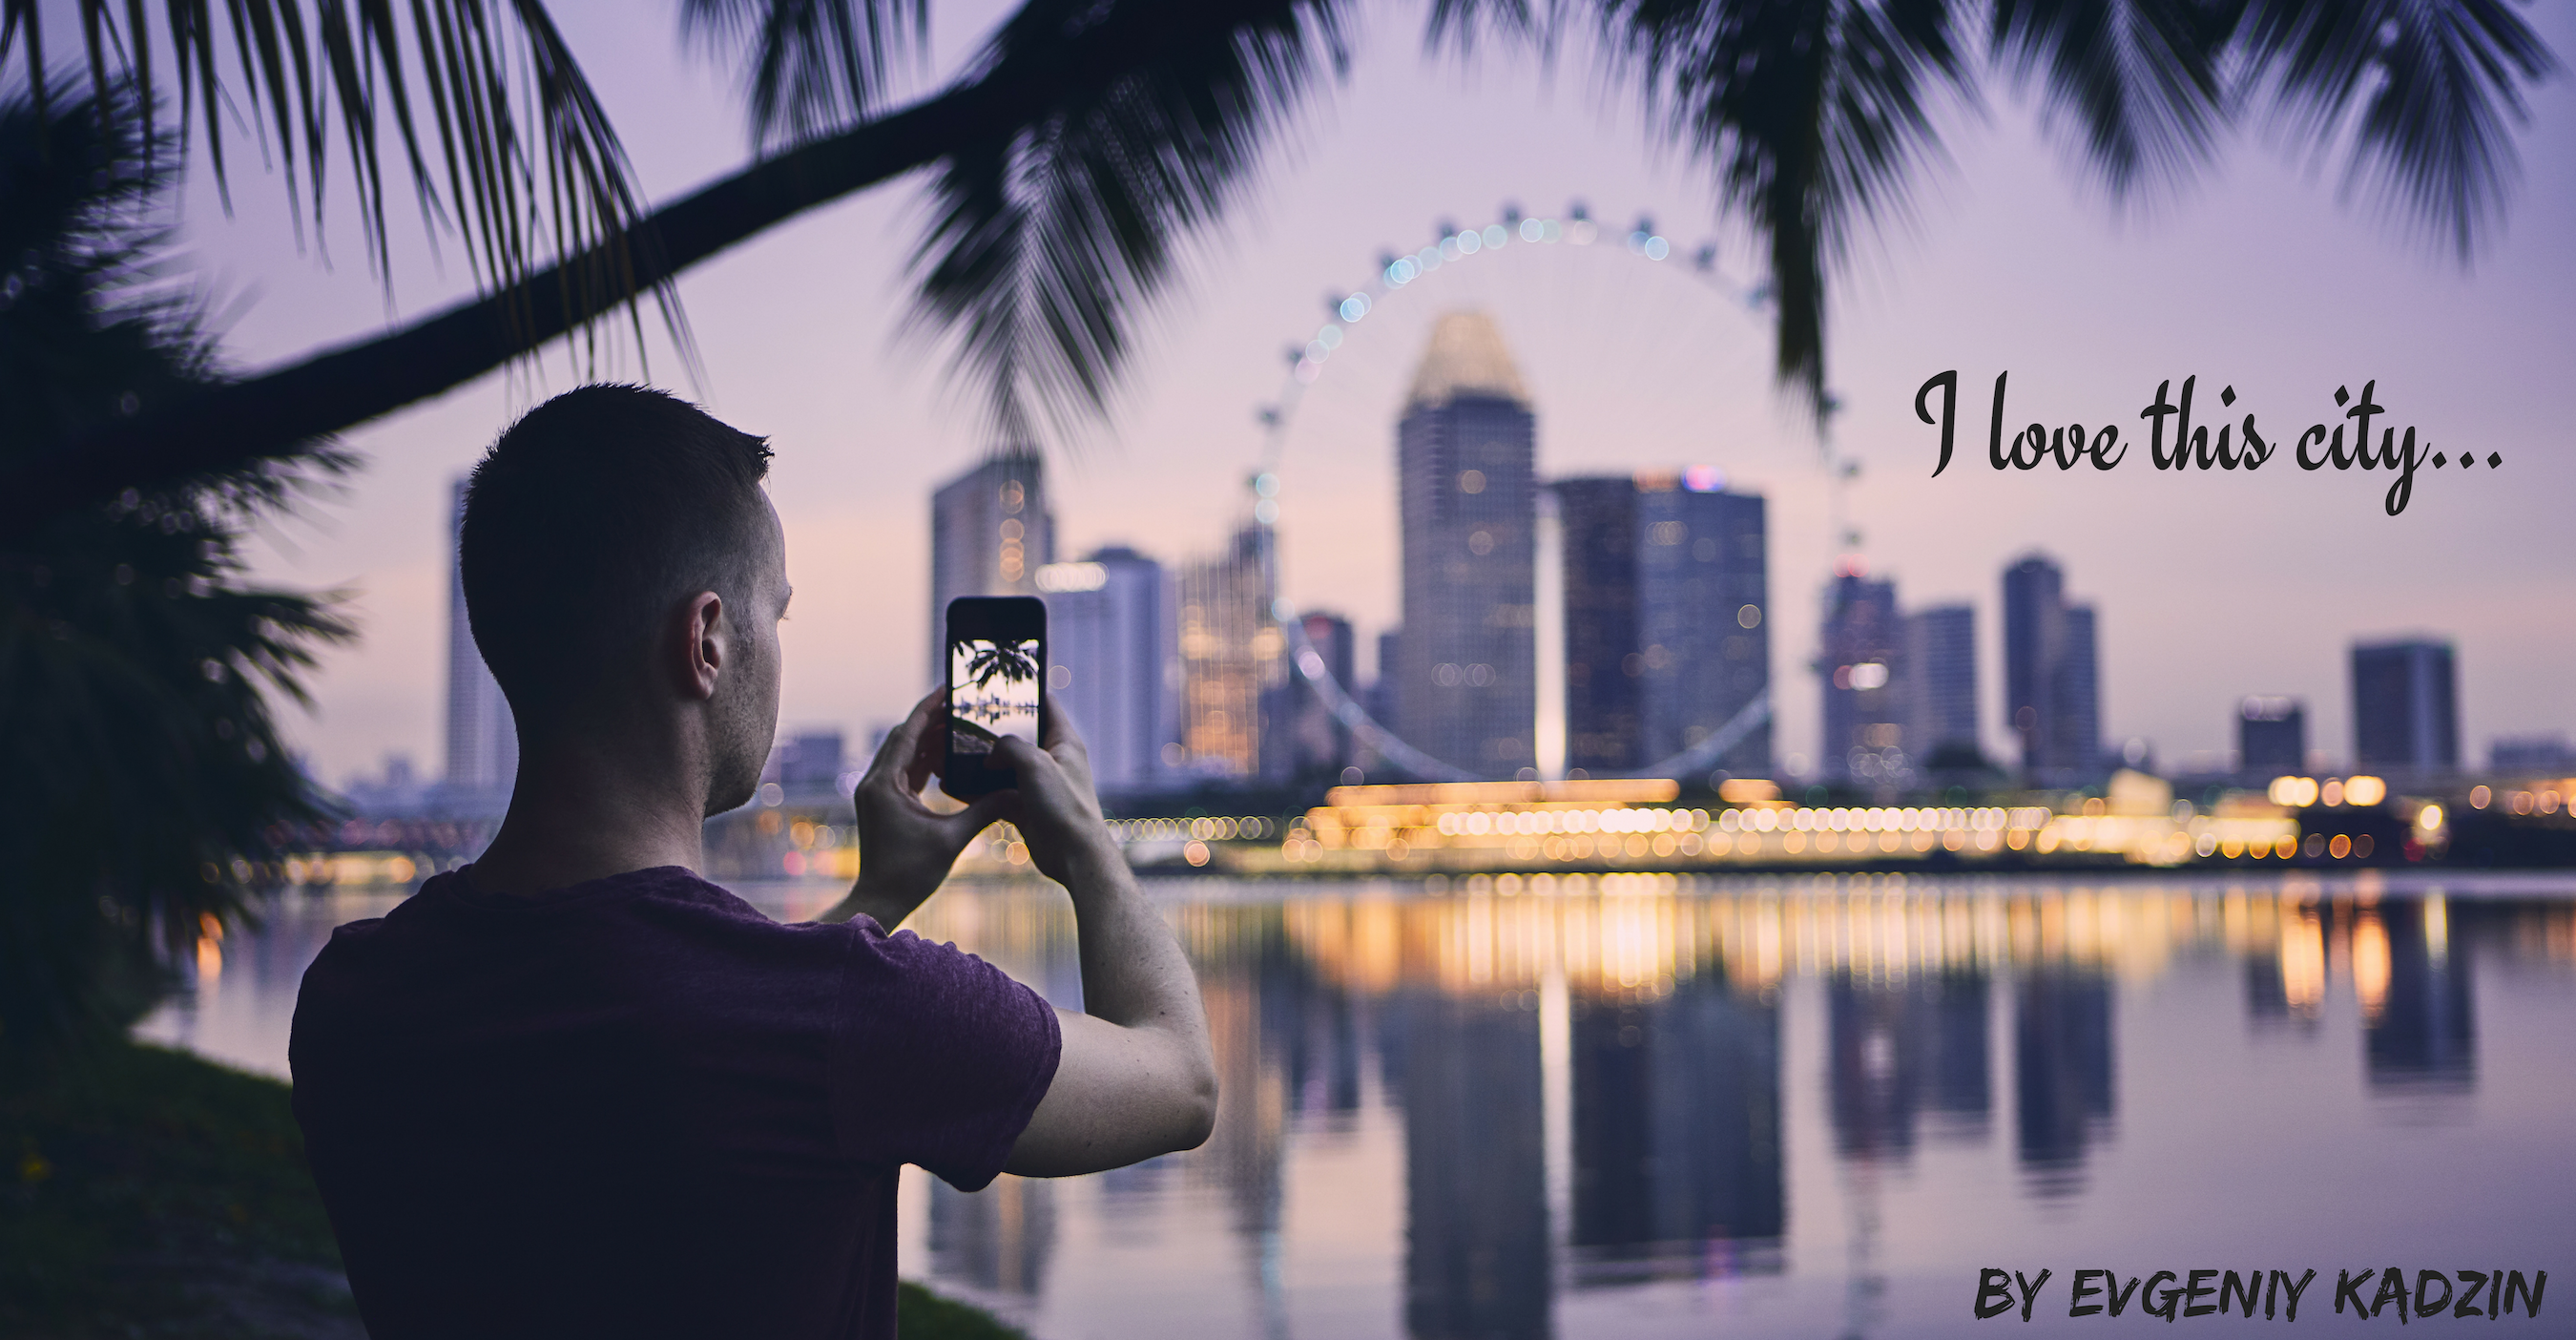 I've Been Living inSingapore for 4Years and Would Like toShare10 Things That Surprise MeEvery Day